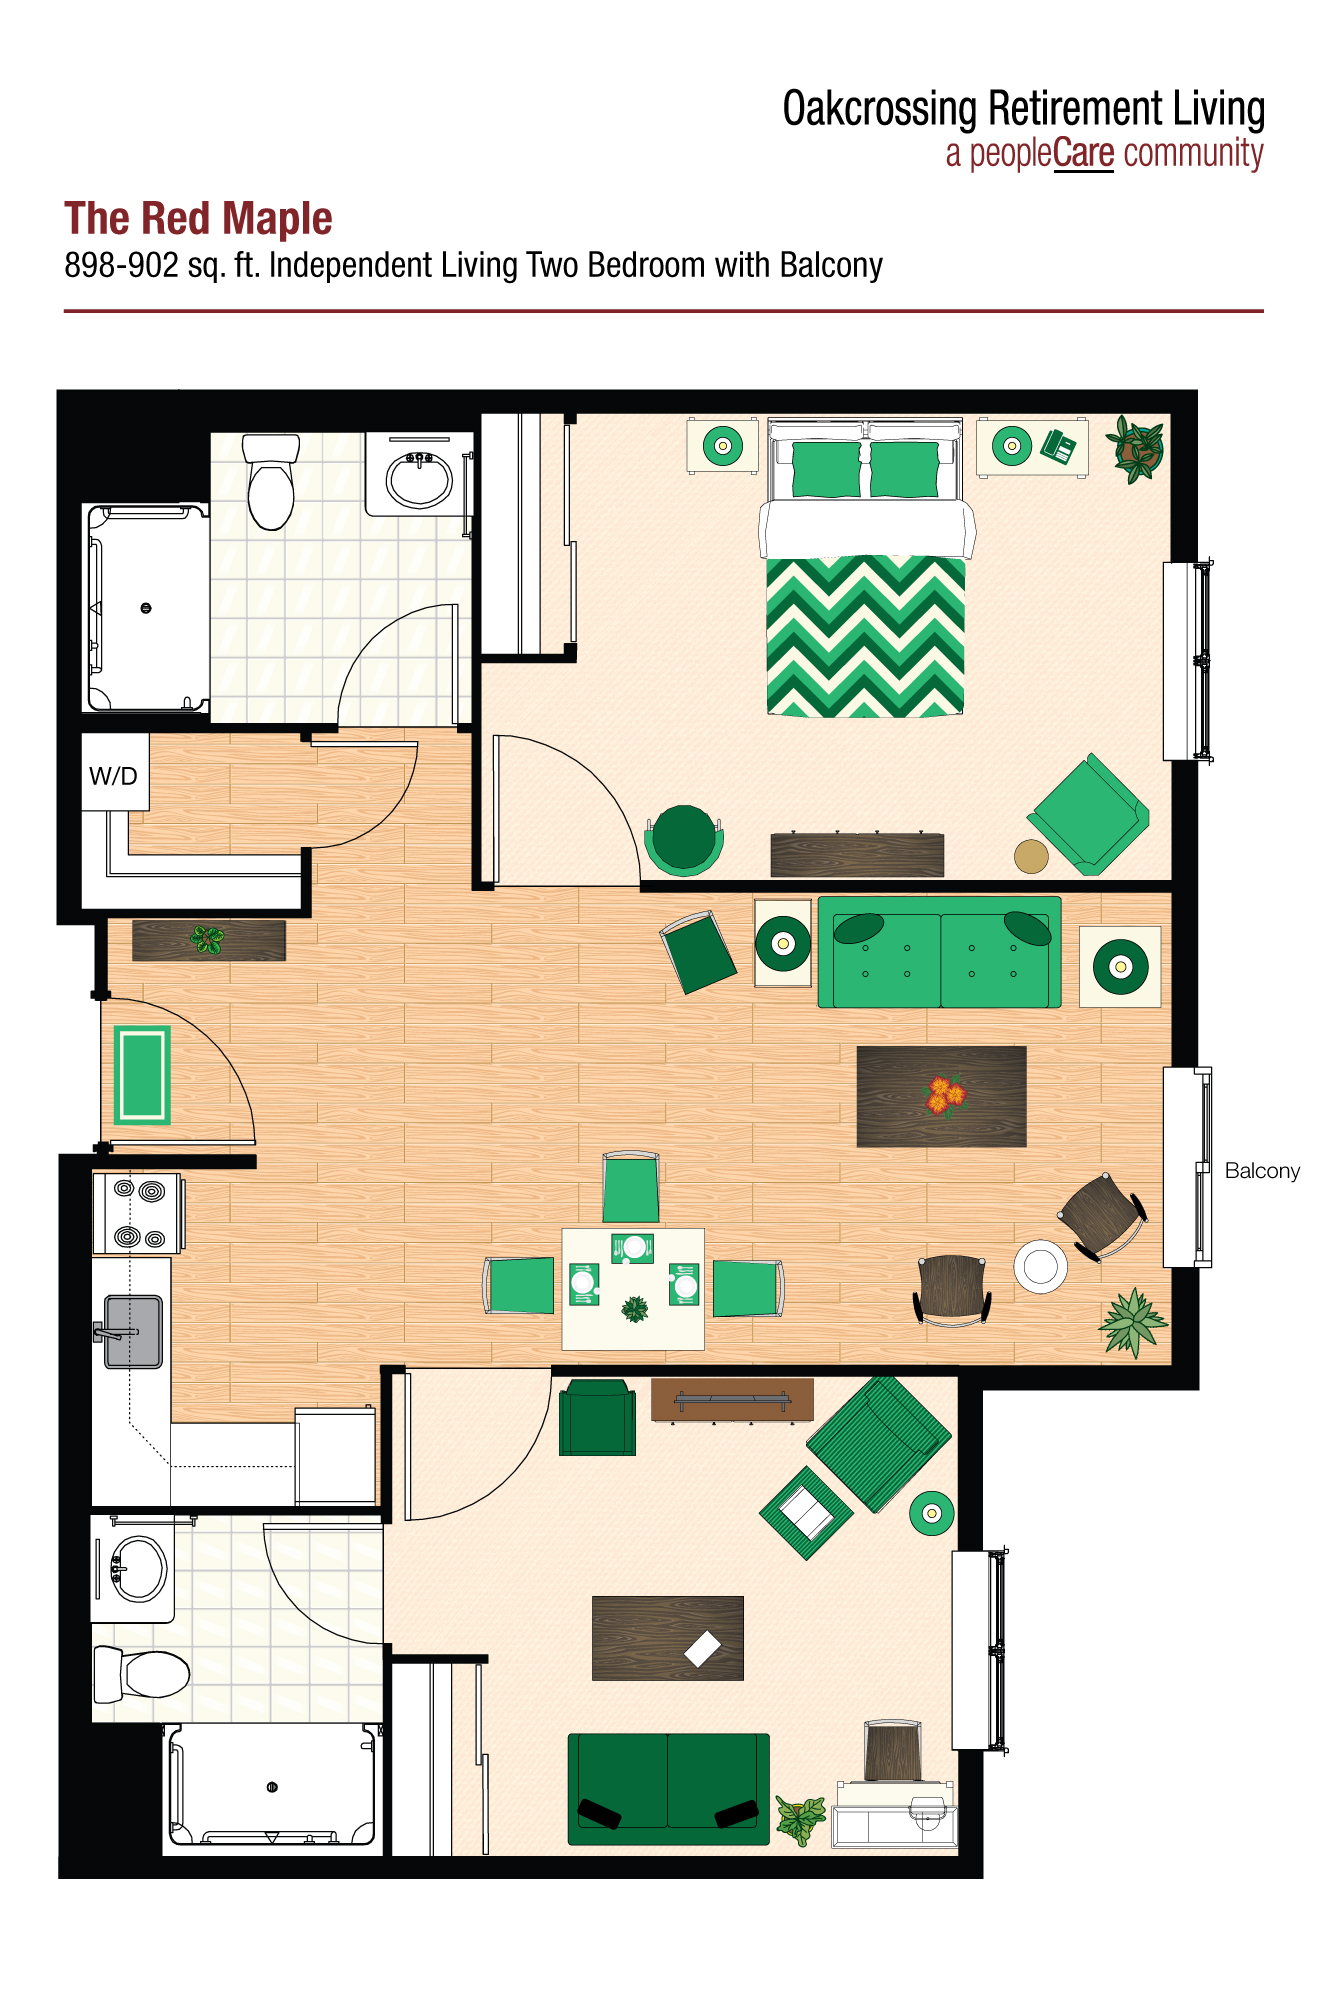 Oakcrossing_RedMaple_floorplan2017